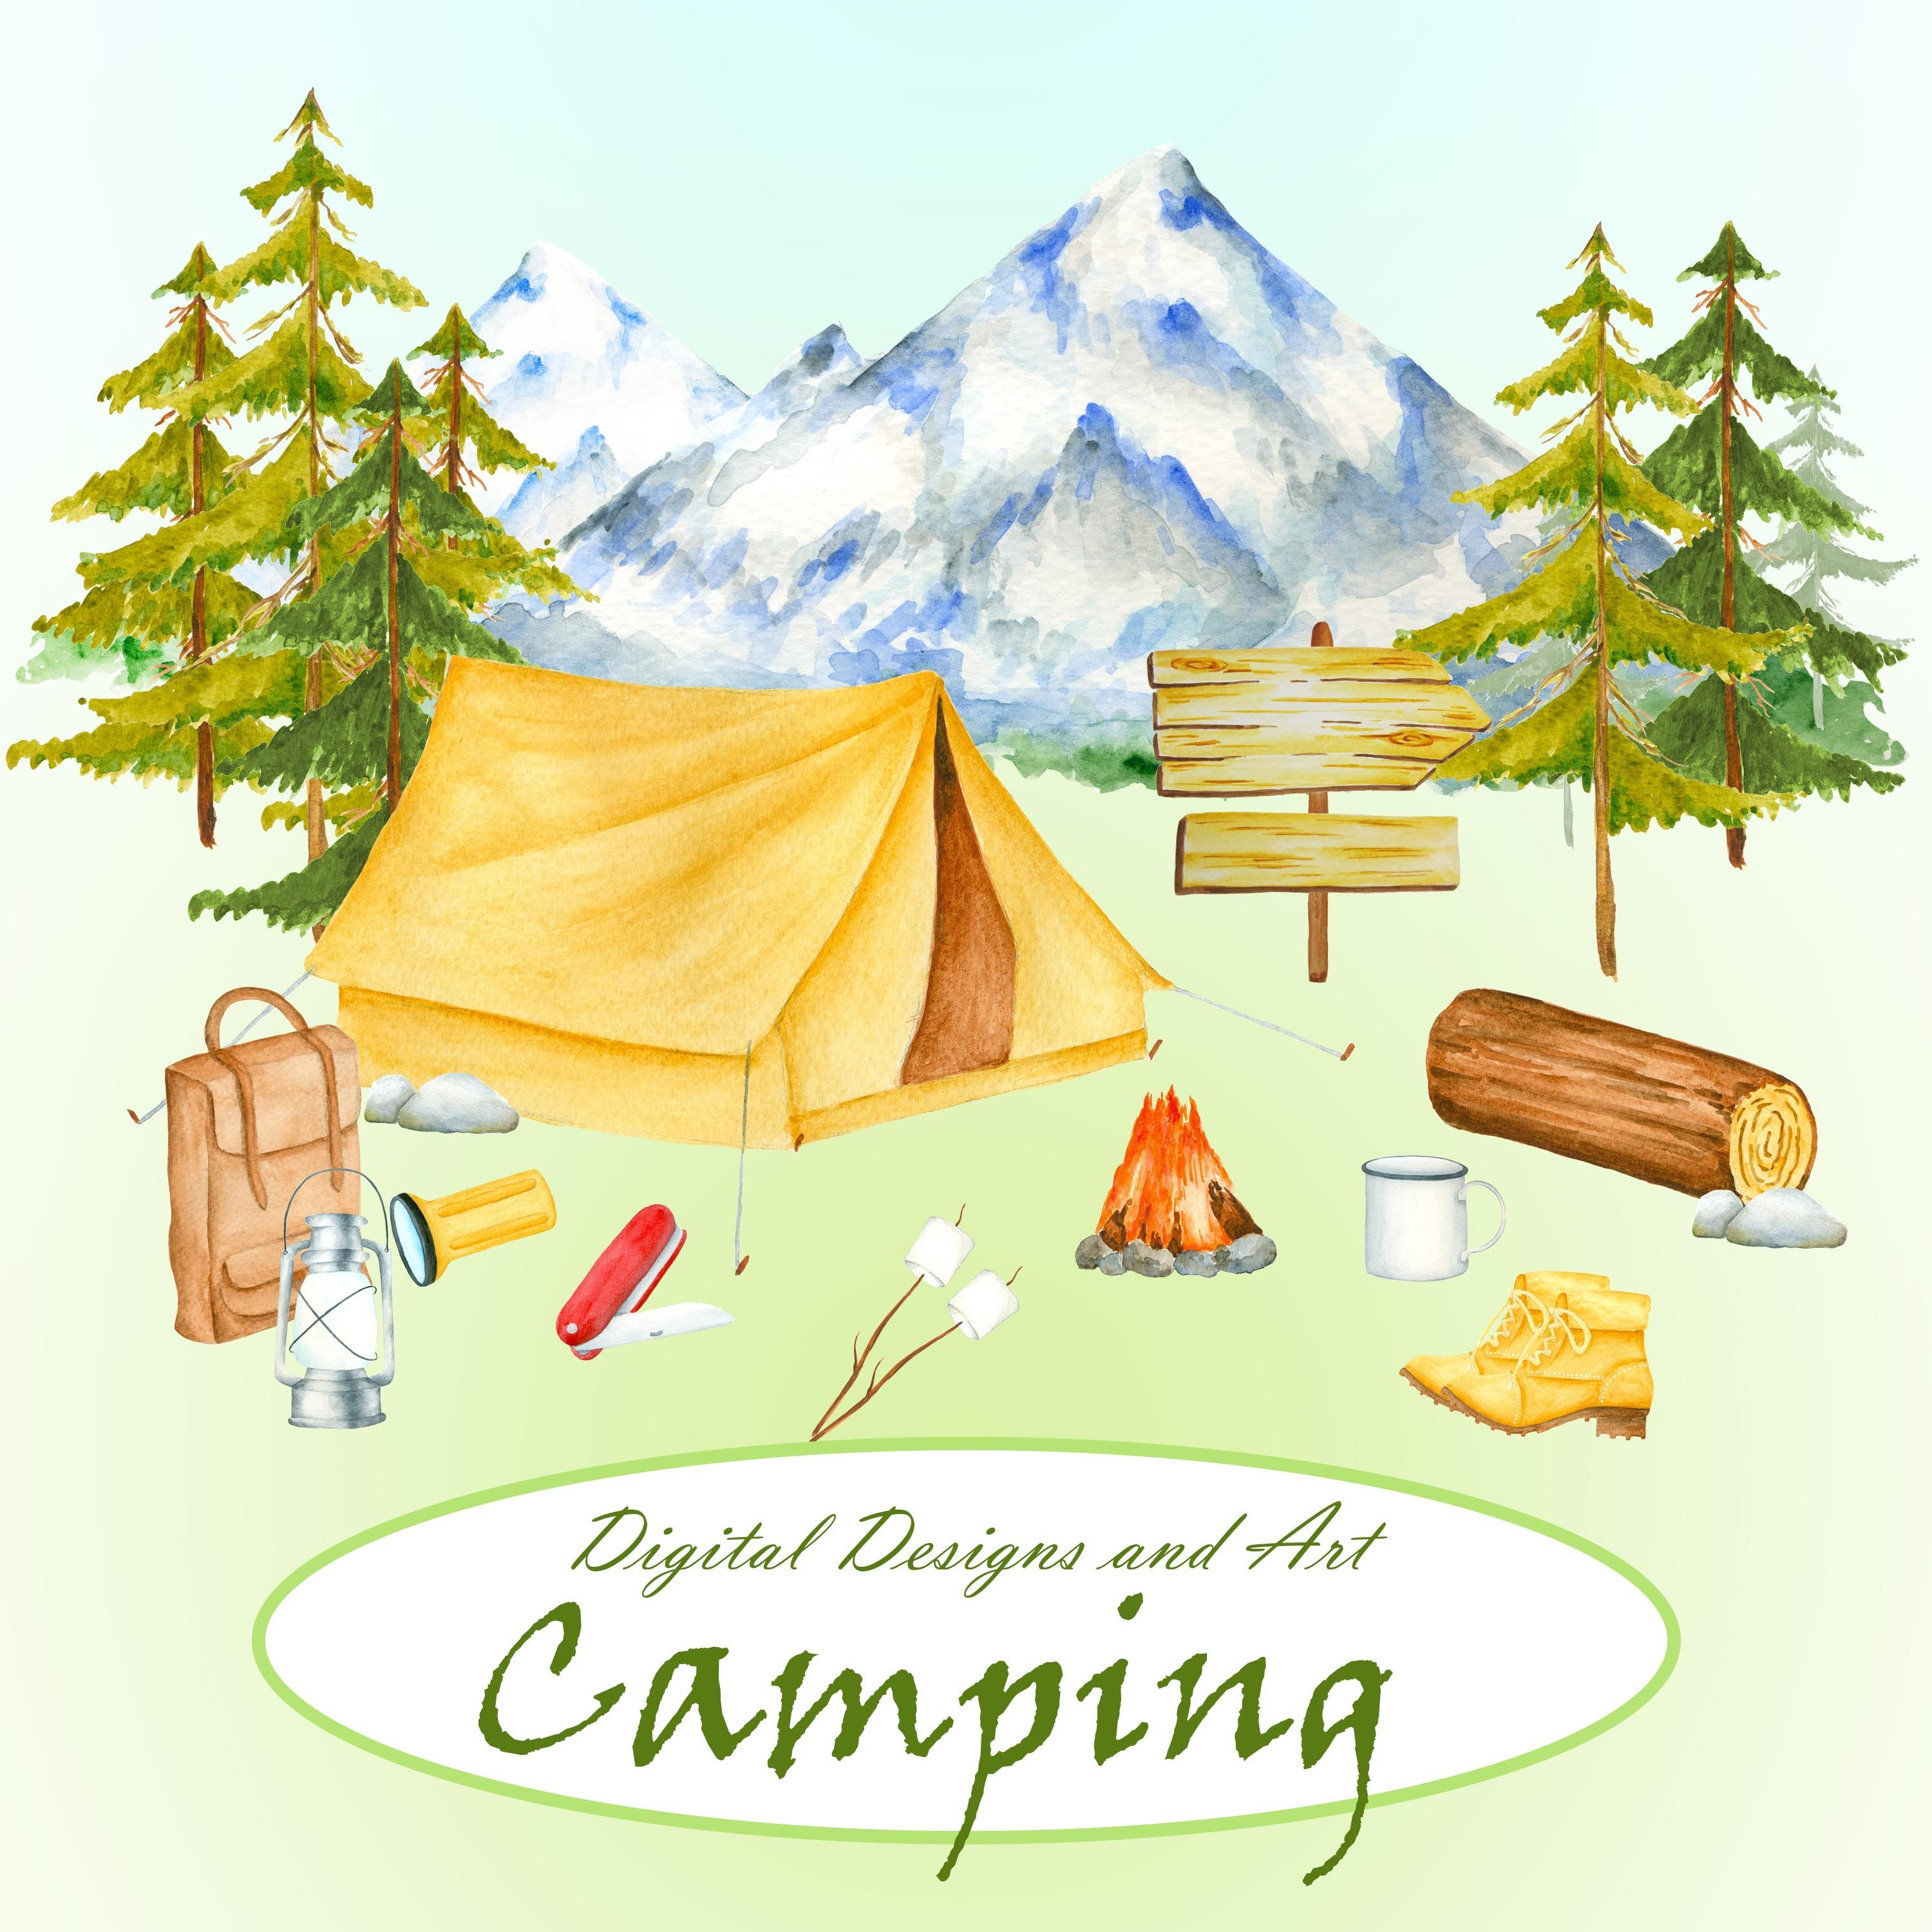 Watercolor Camping Item Clipart Forest And Mountains Nature Forestbonfire Tent